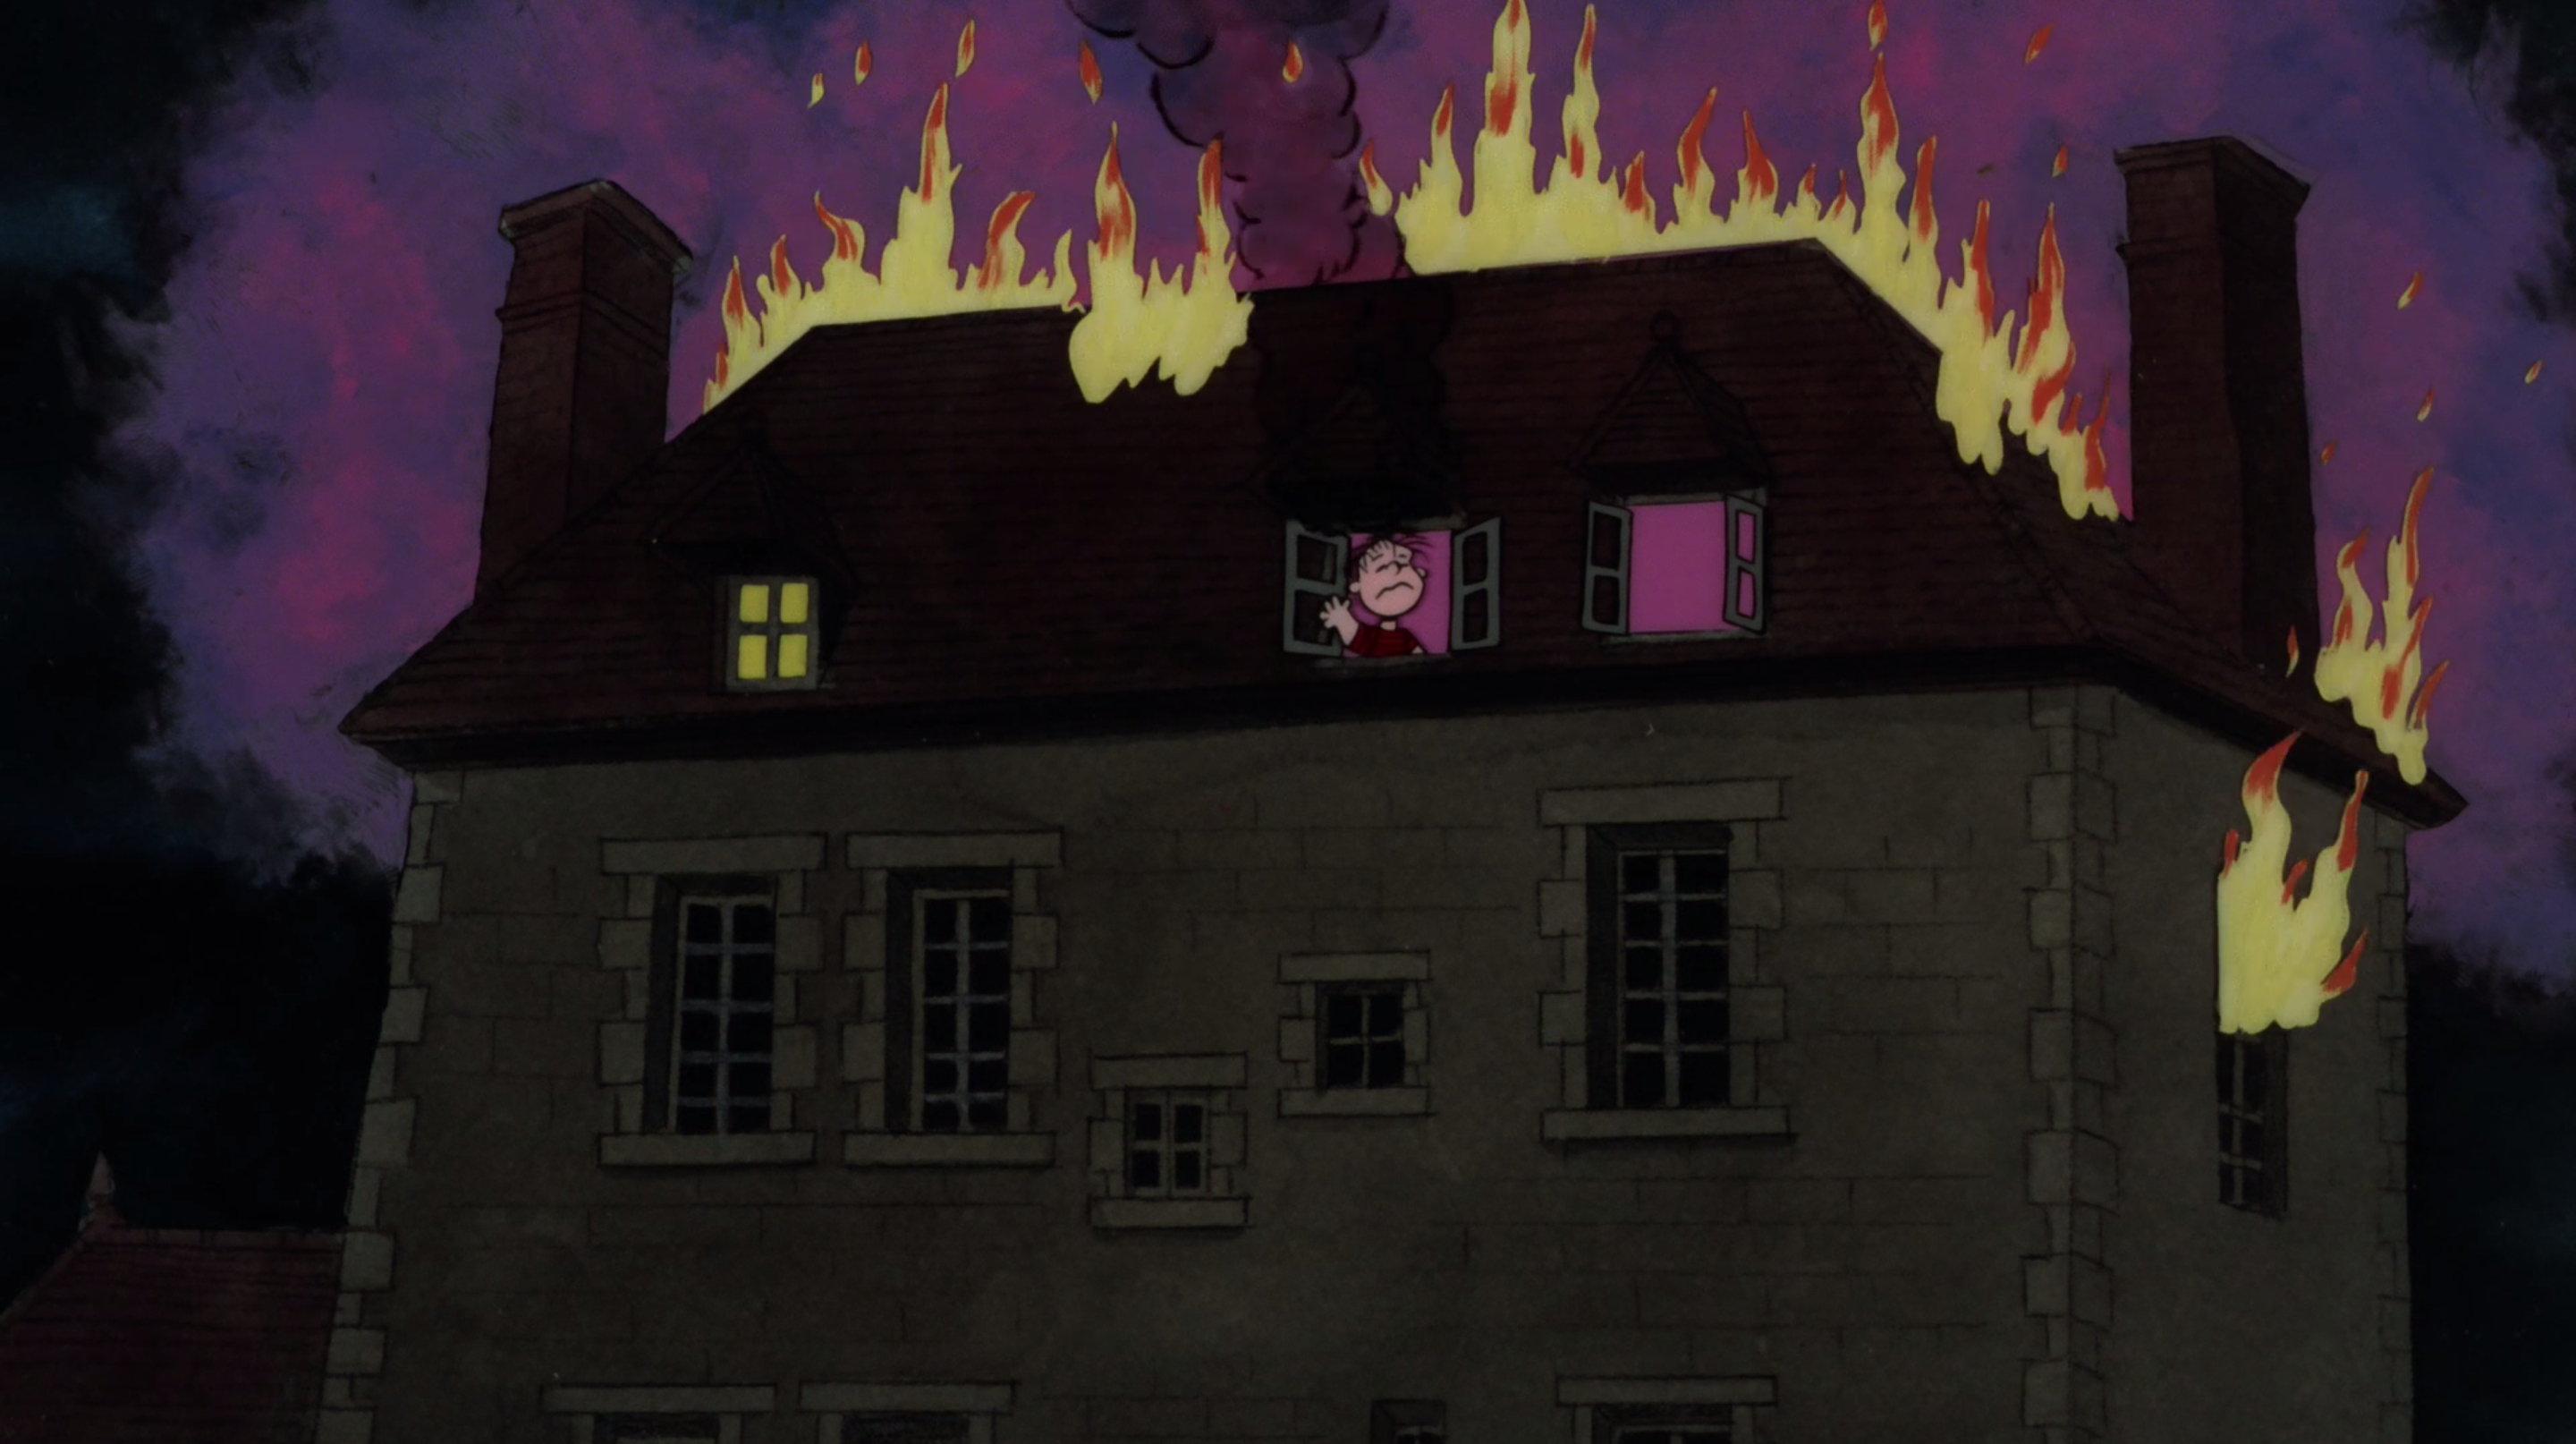 File:Thechateauisonfire.jpg